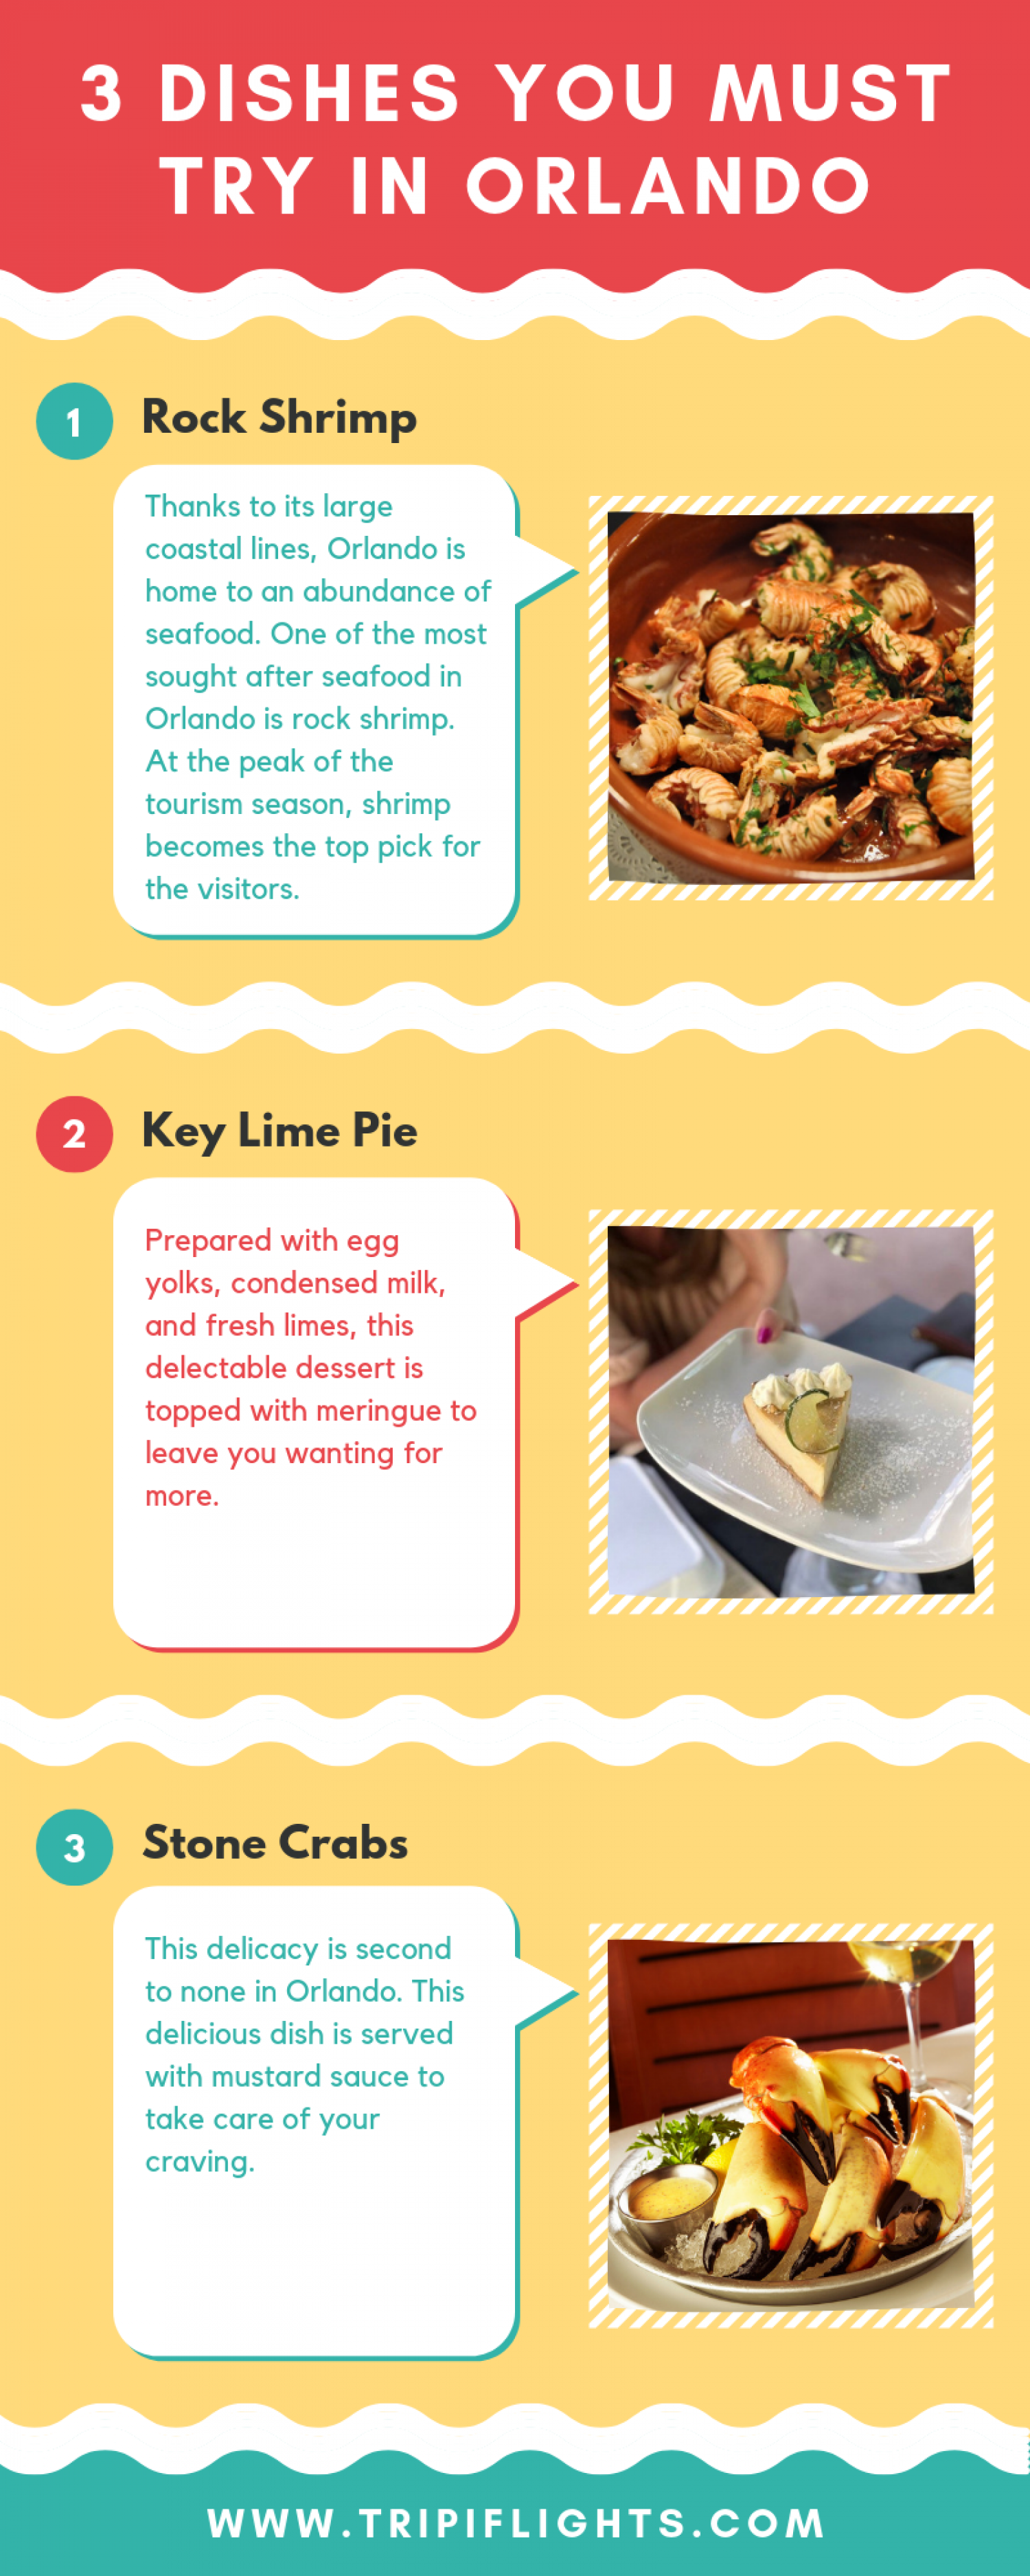 3 Dishes You Must Try in Orlando - airfare deals to Orlando Infographic